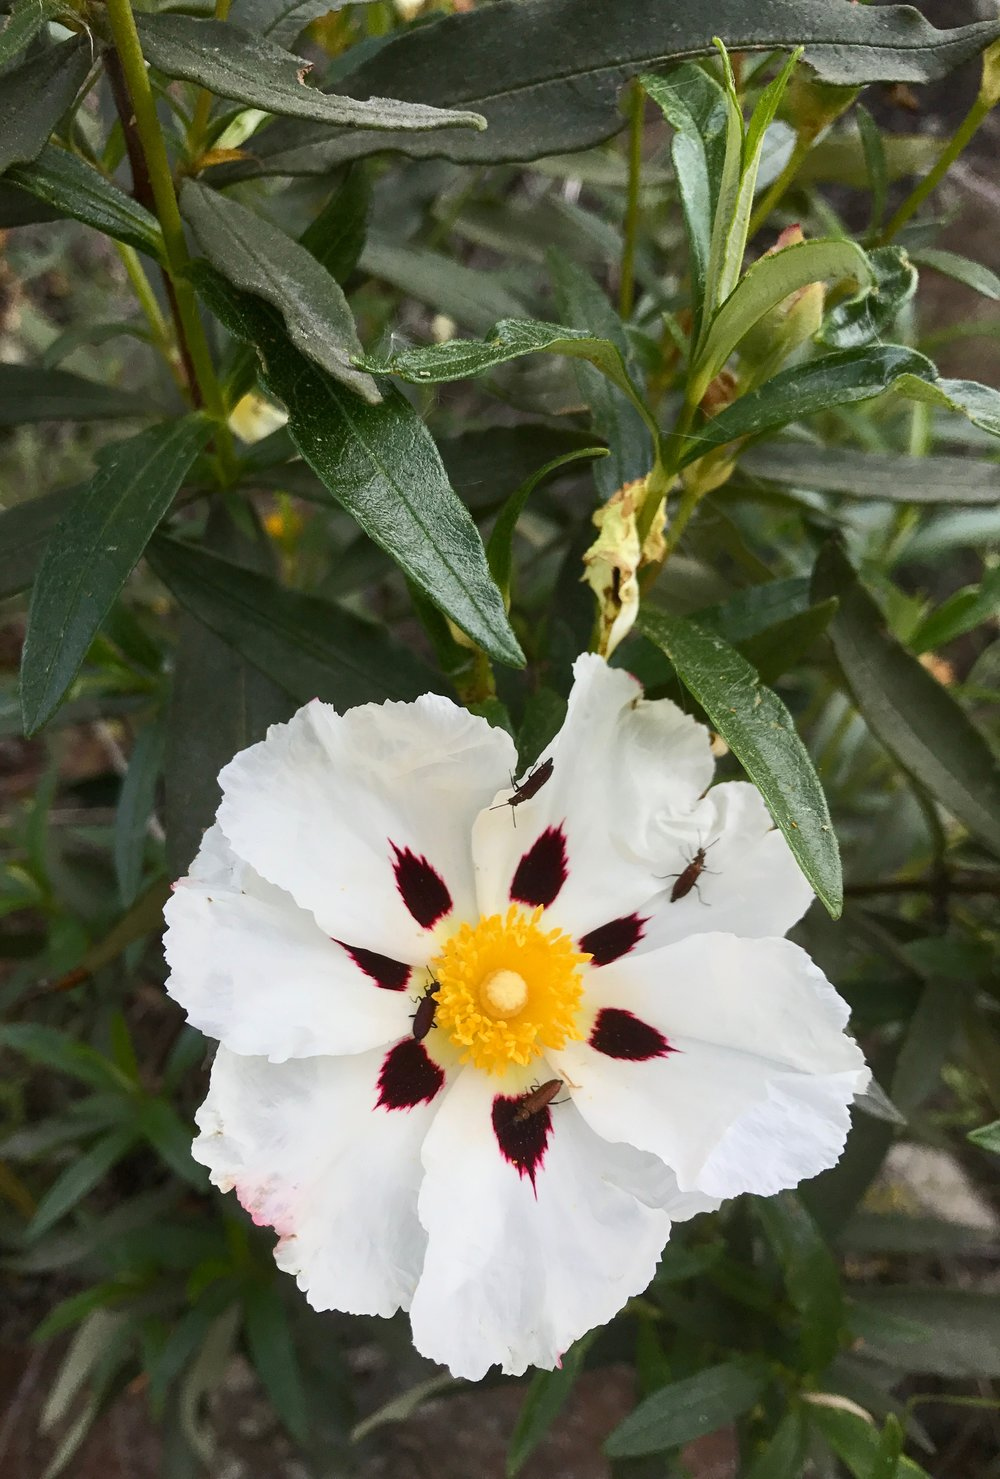 "Gum rockrose ( Cistus ladanifer ) resembles a fried egg and has sticky leaves that produce an aromatic resin, ""labdanum"", which is harvested for perfume production."